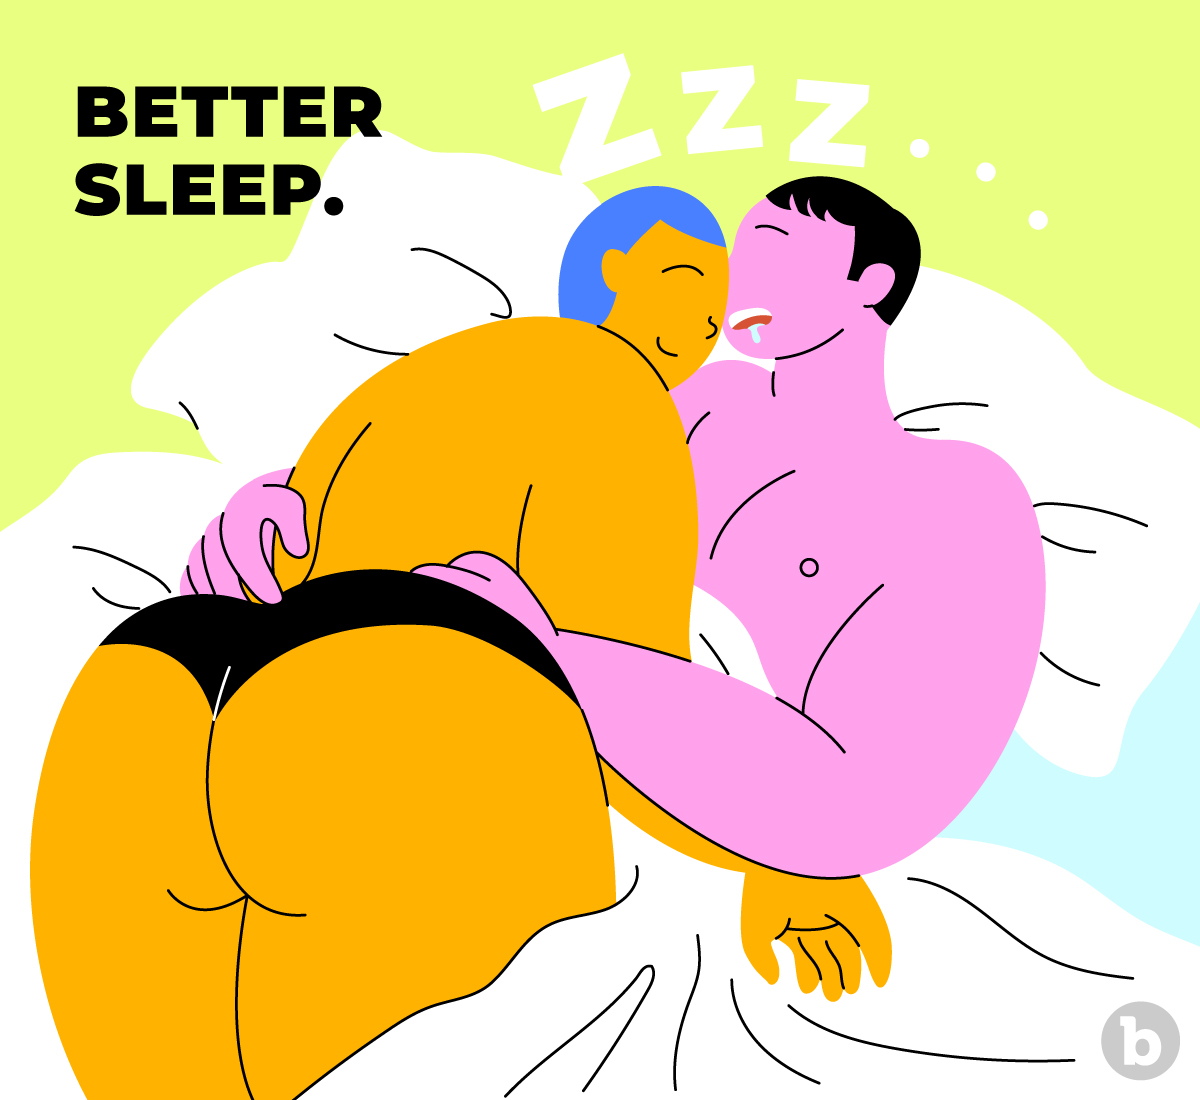 Having orgasms can help with sleep deprivation